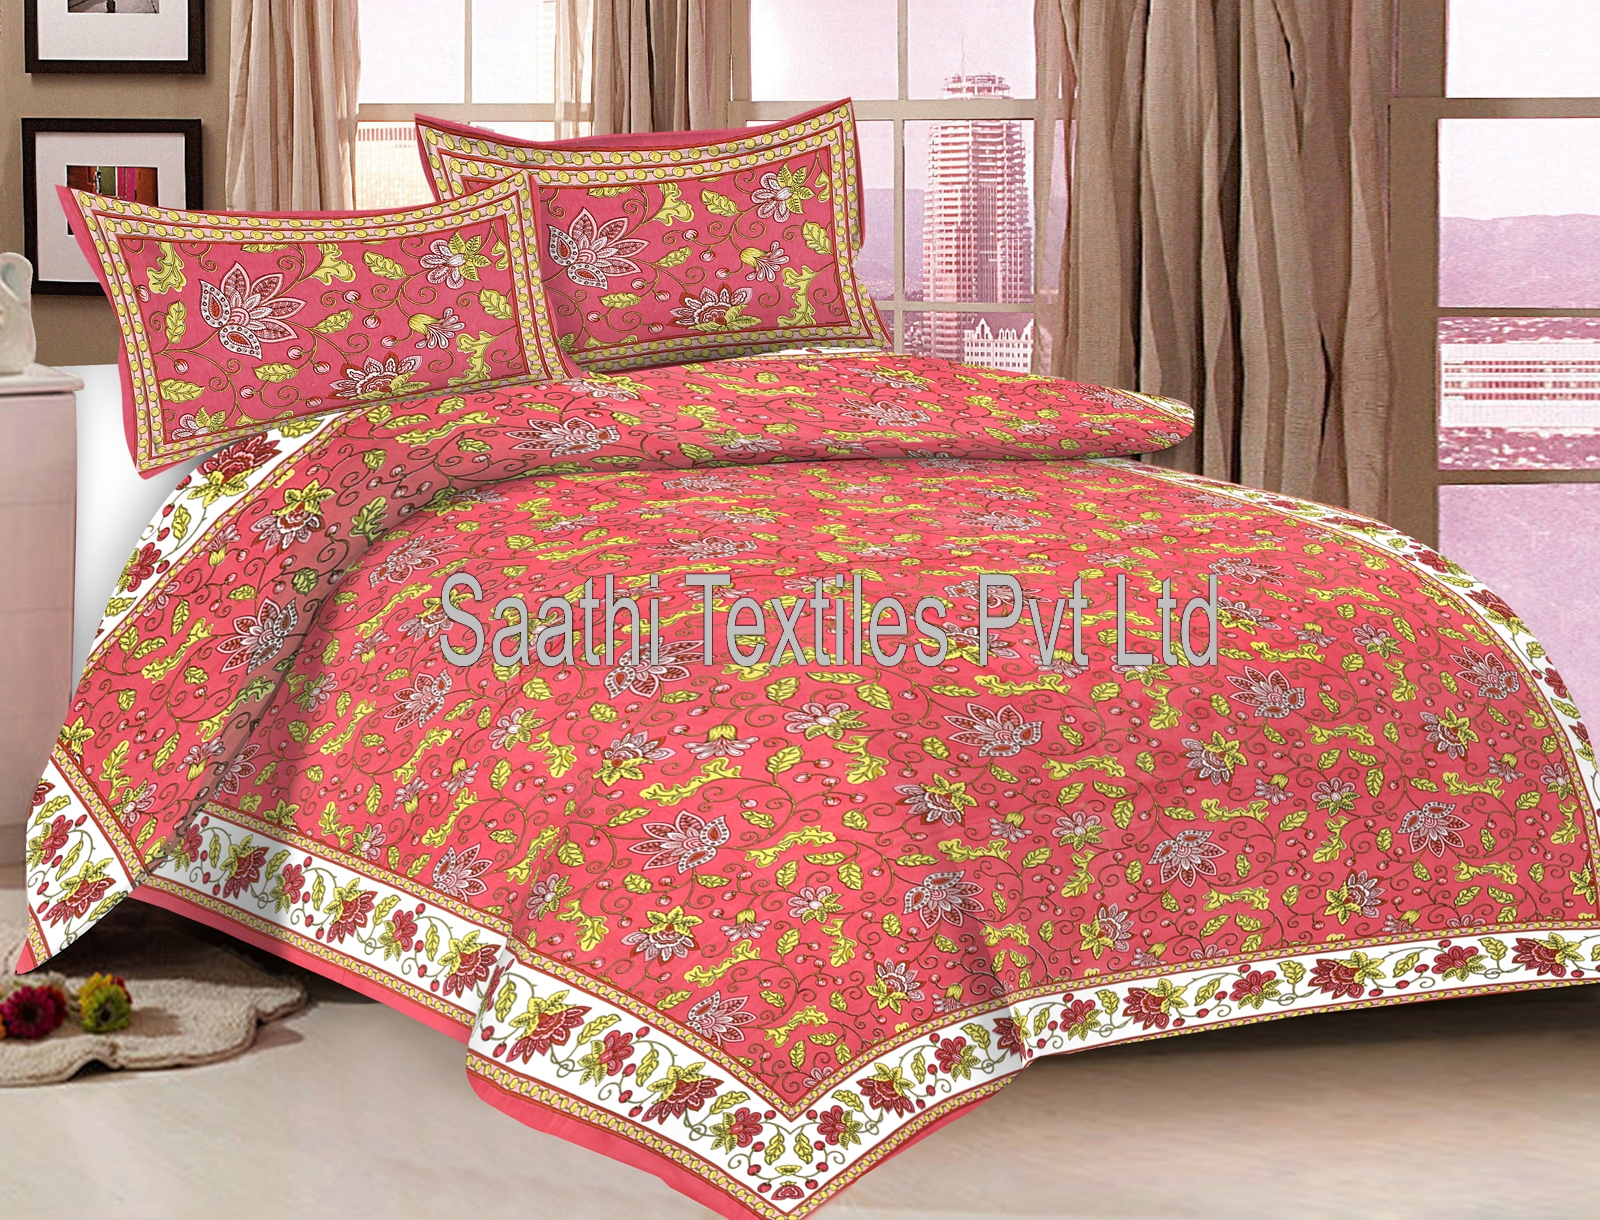 Attrayant Double Bed Sheets, 100% Cotton Printed